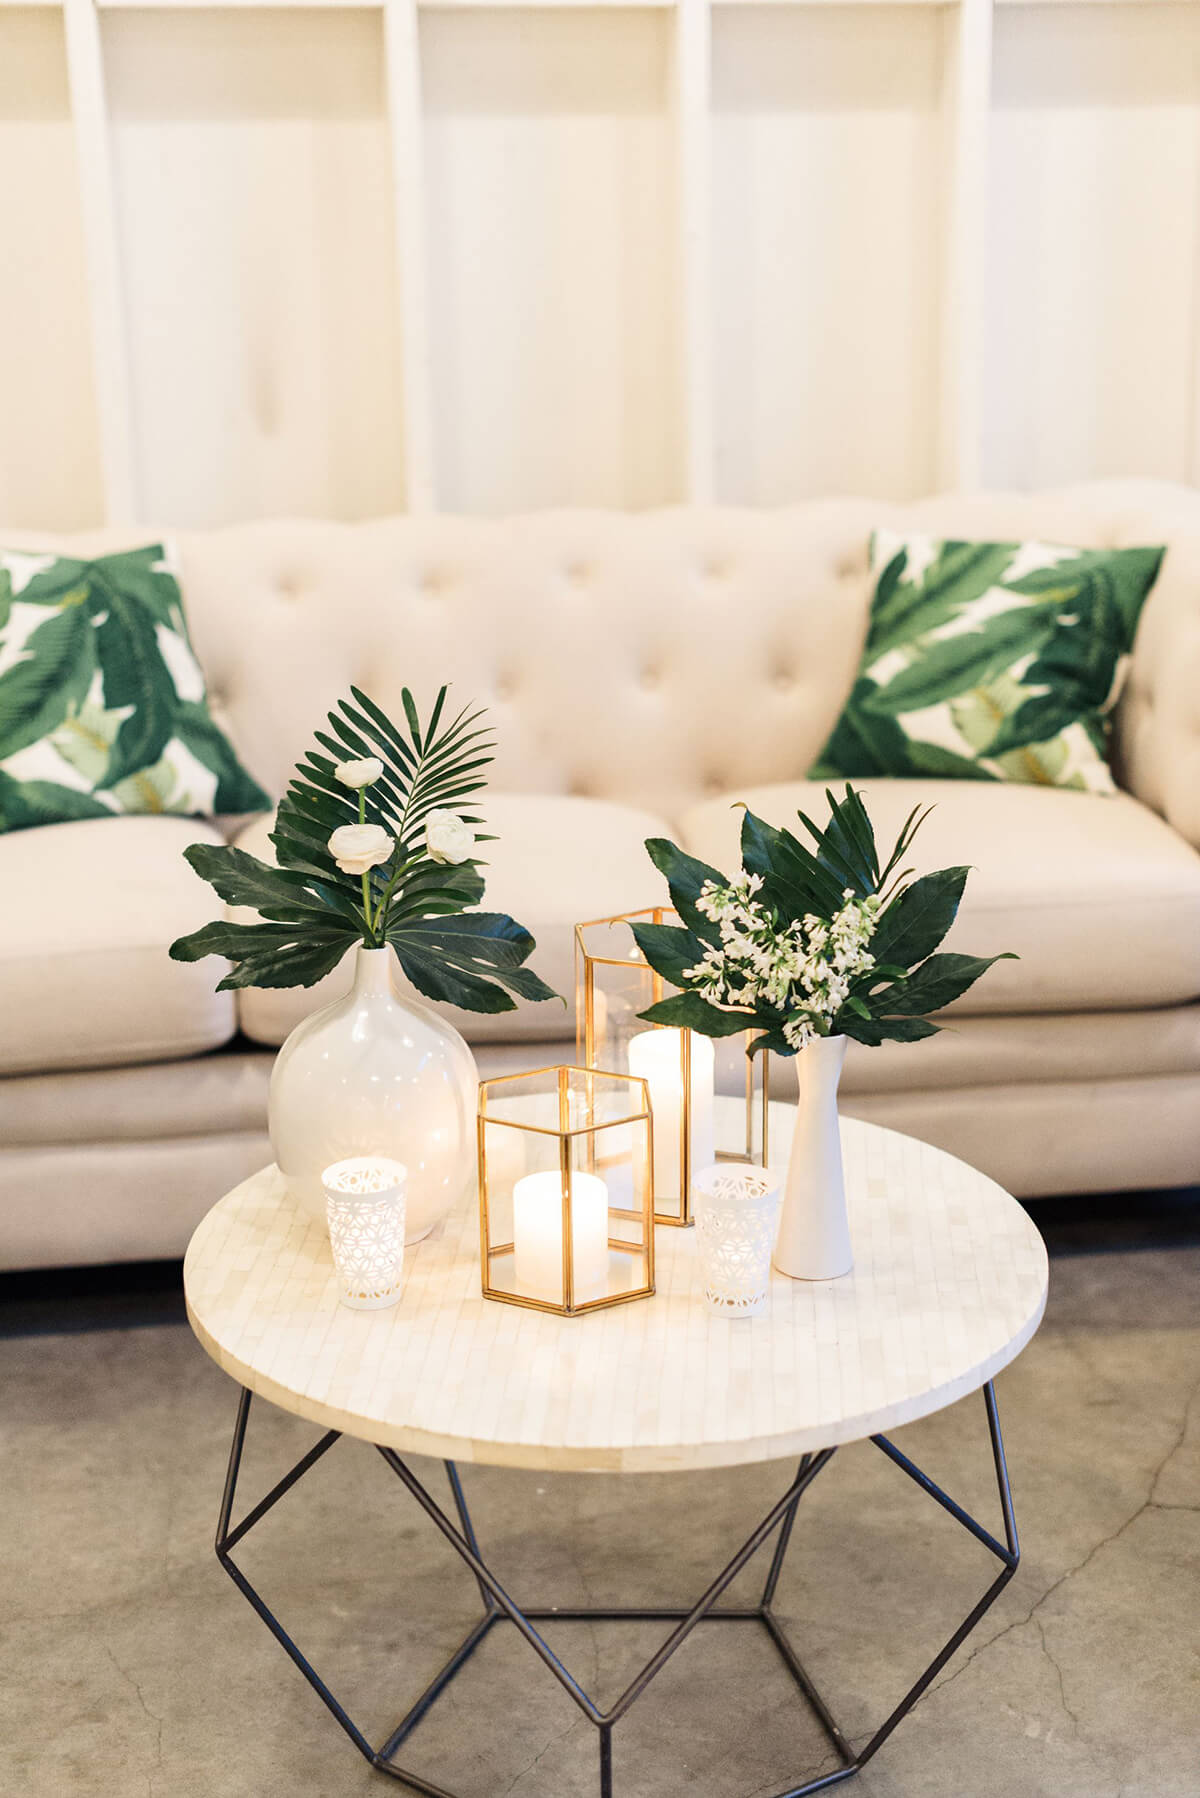 Elegant Candles, Foliage, and Flower Arrangement